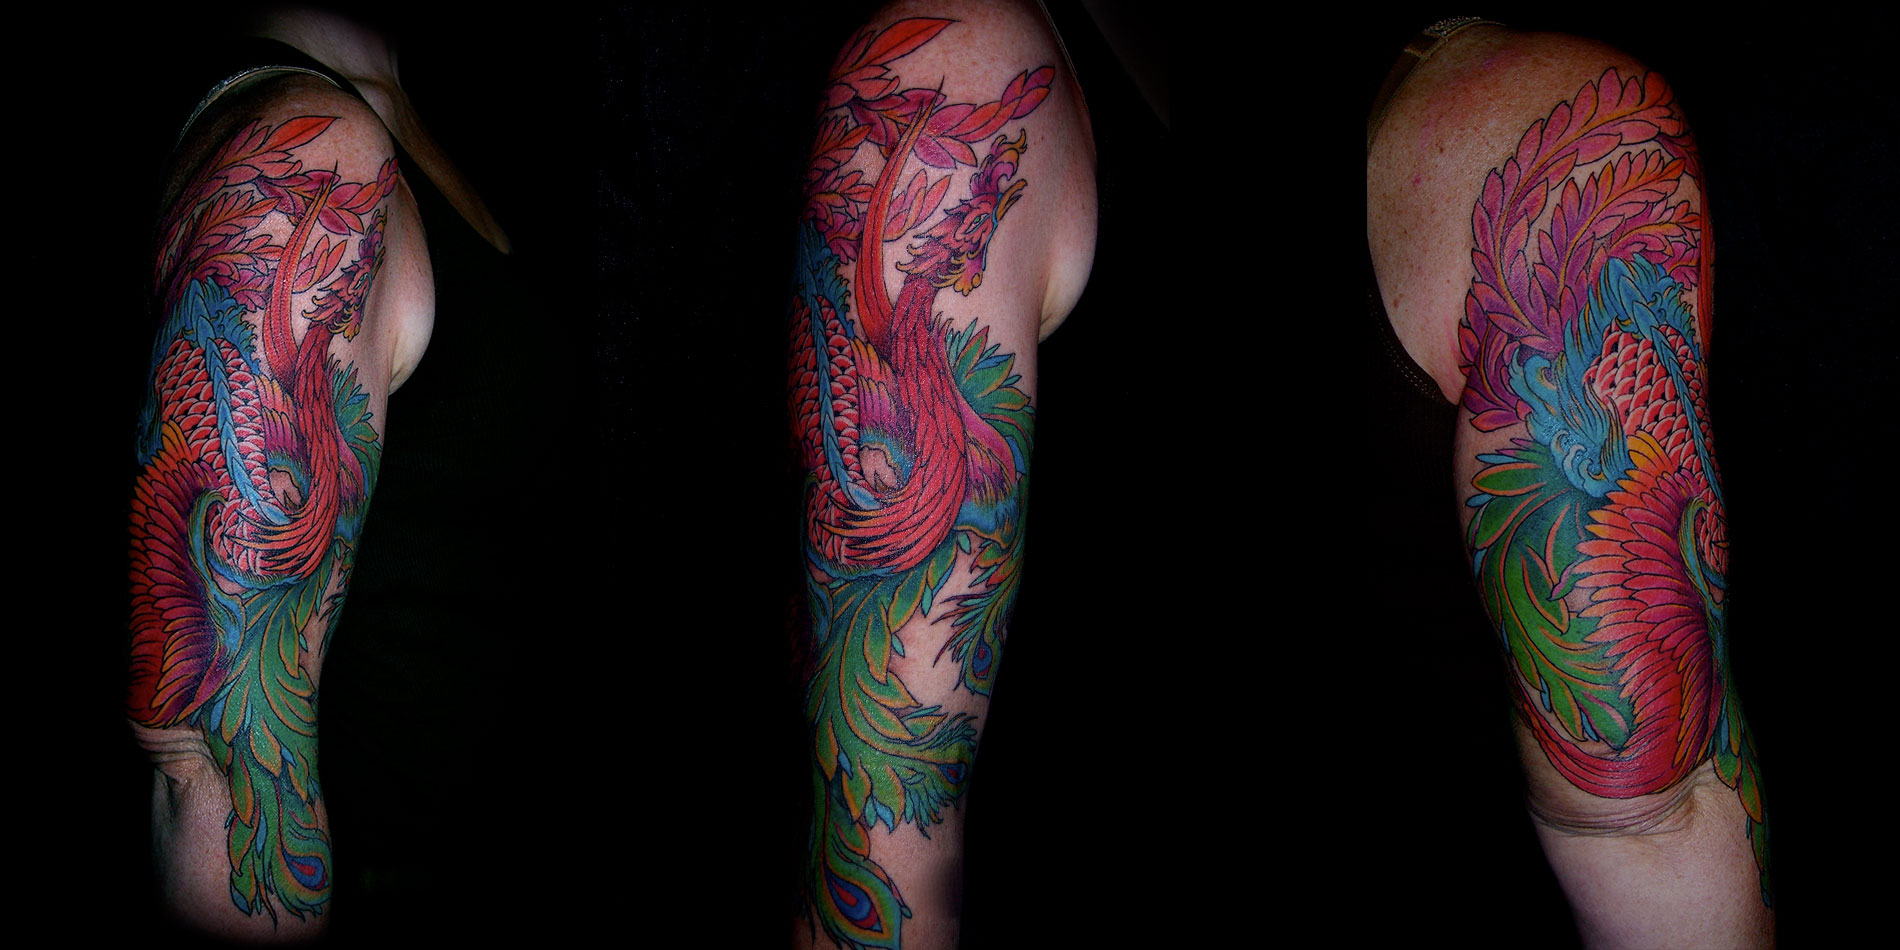 Phoenix full sleeve tattoo done in chiang mai thailand